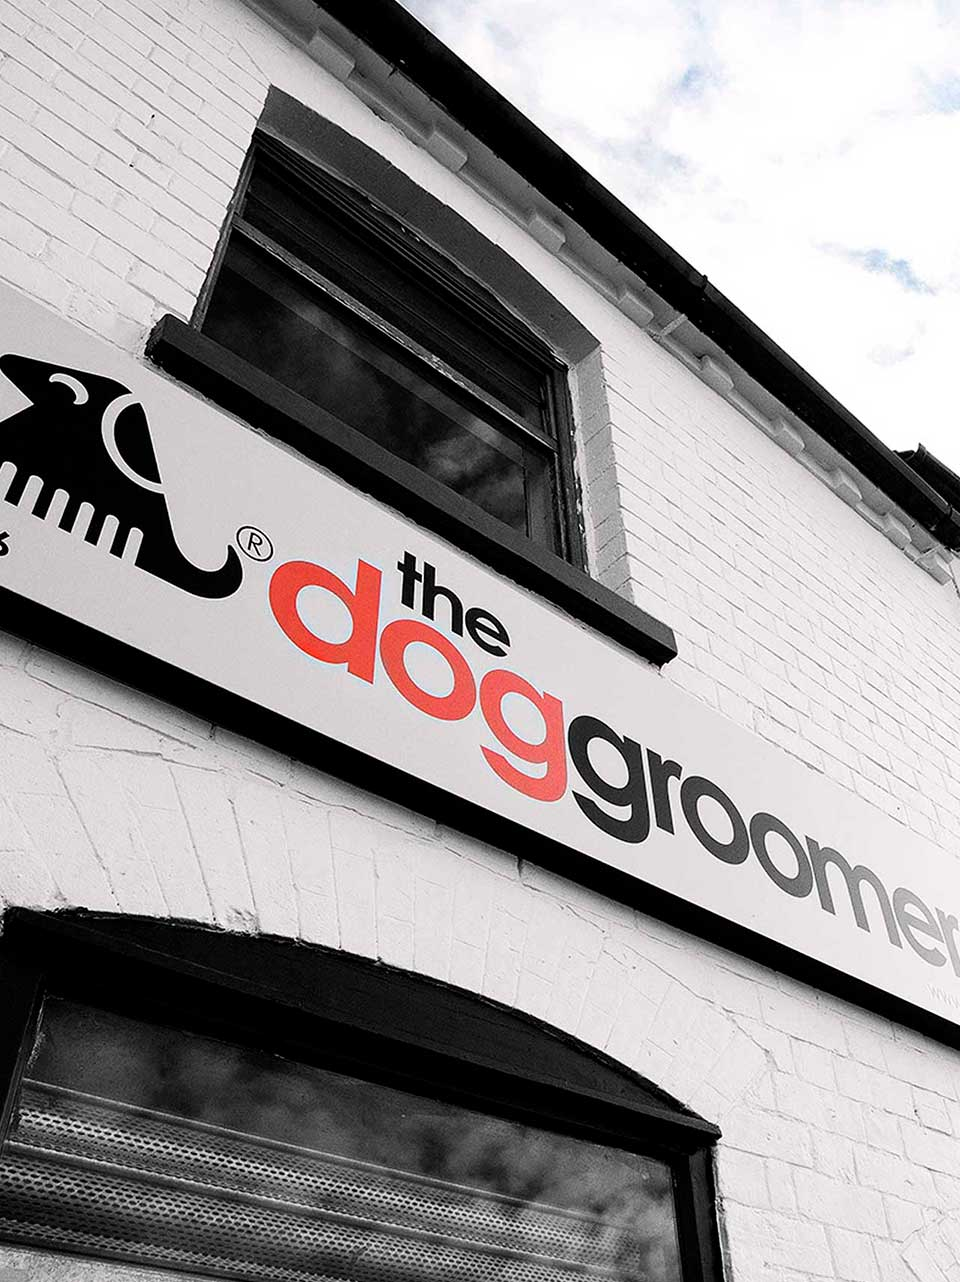 Exterior Signage at The Dog Groomer